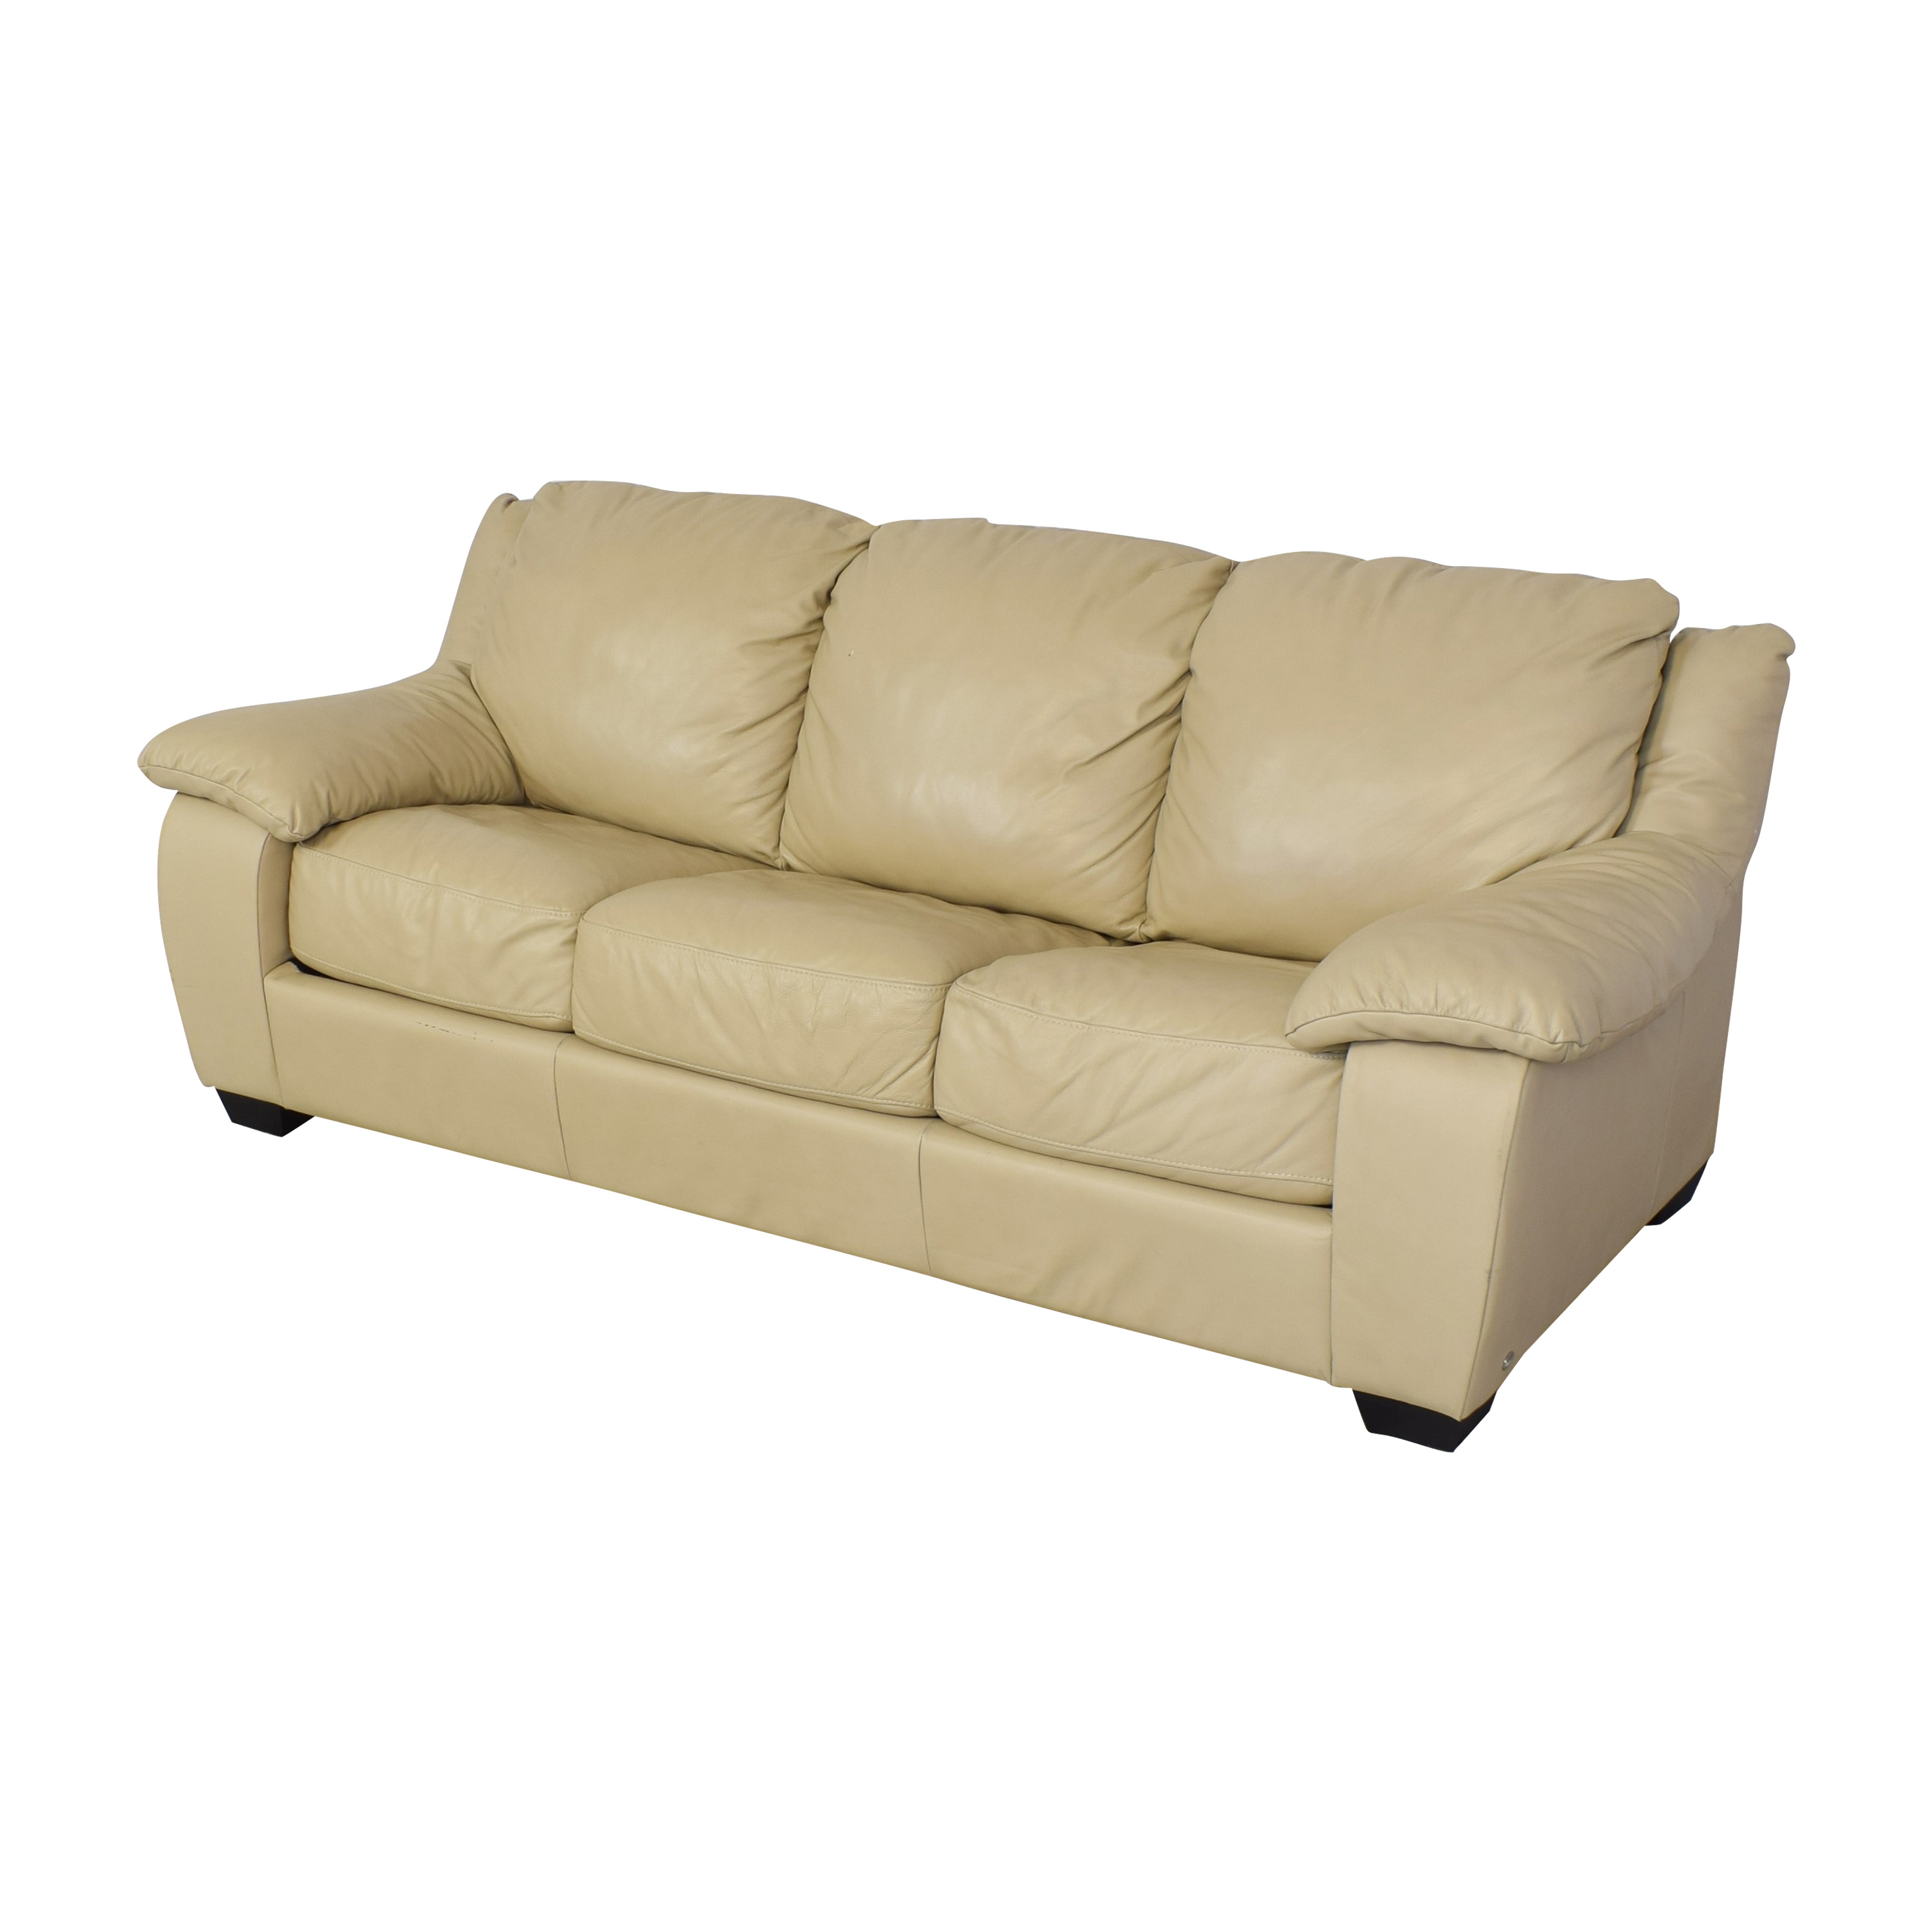 buy Italsofa Italsofa Blair Sleeper Sofa online